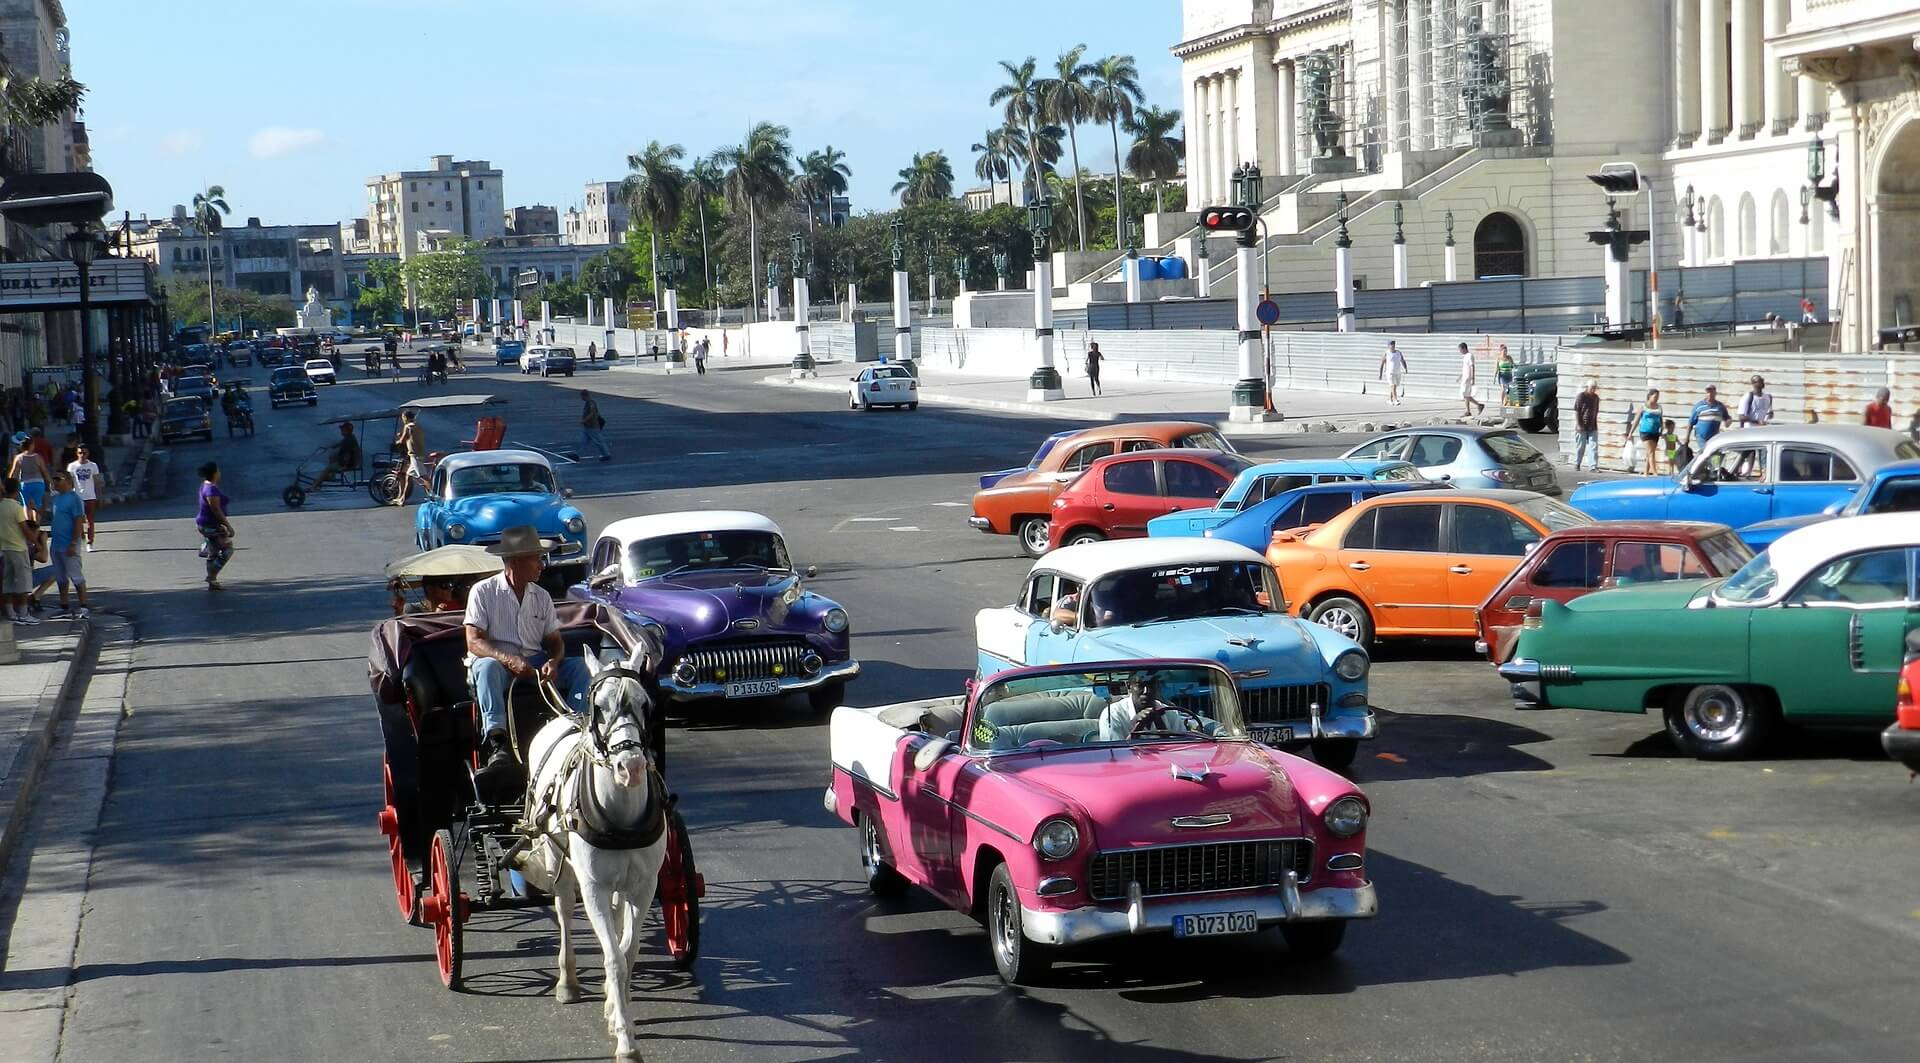 Cuba: CADILLAC OR CHEVROLET, HM? (8) - Glimpses of the World